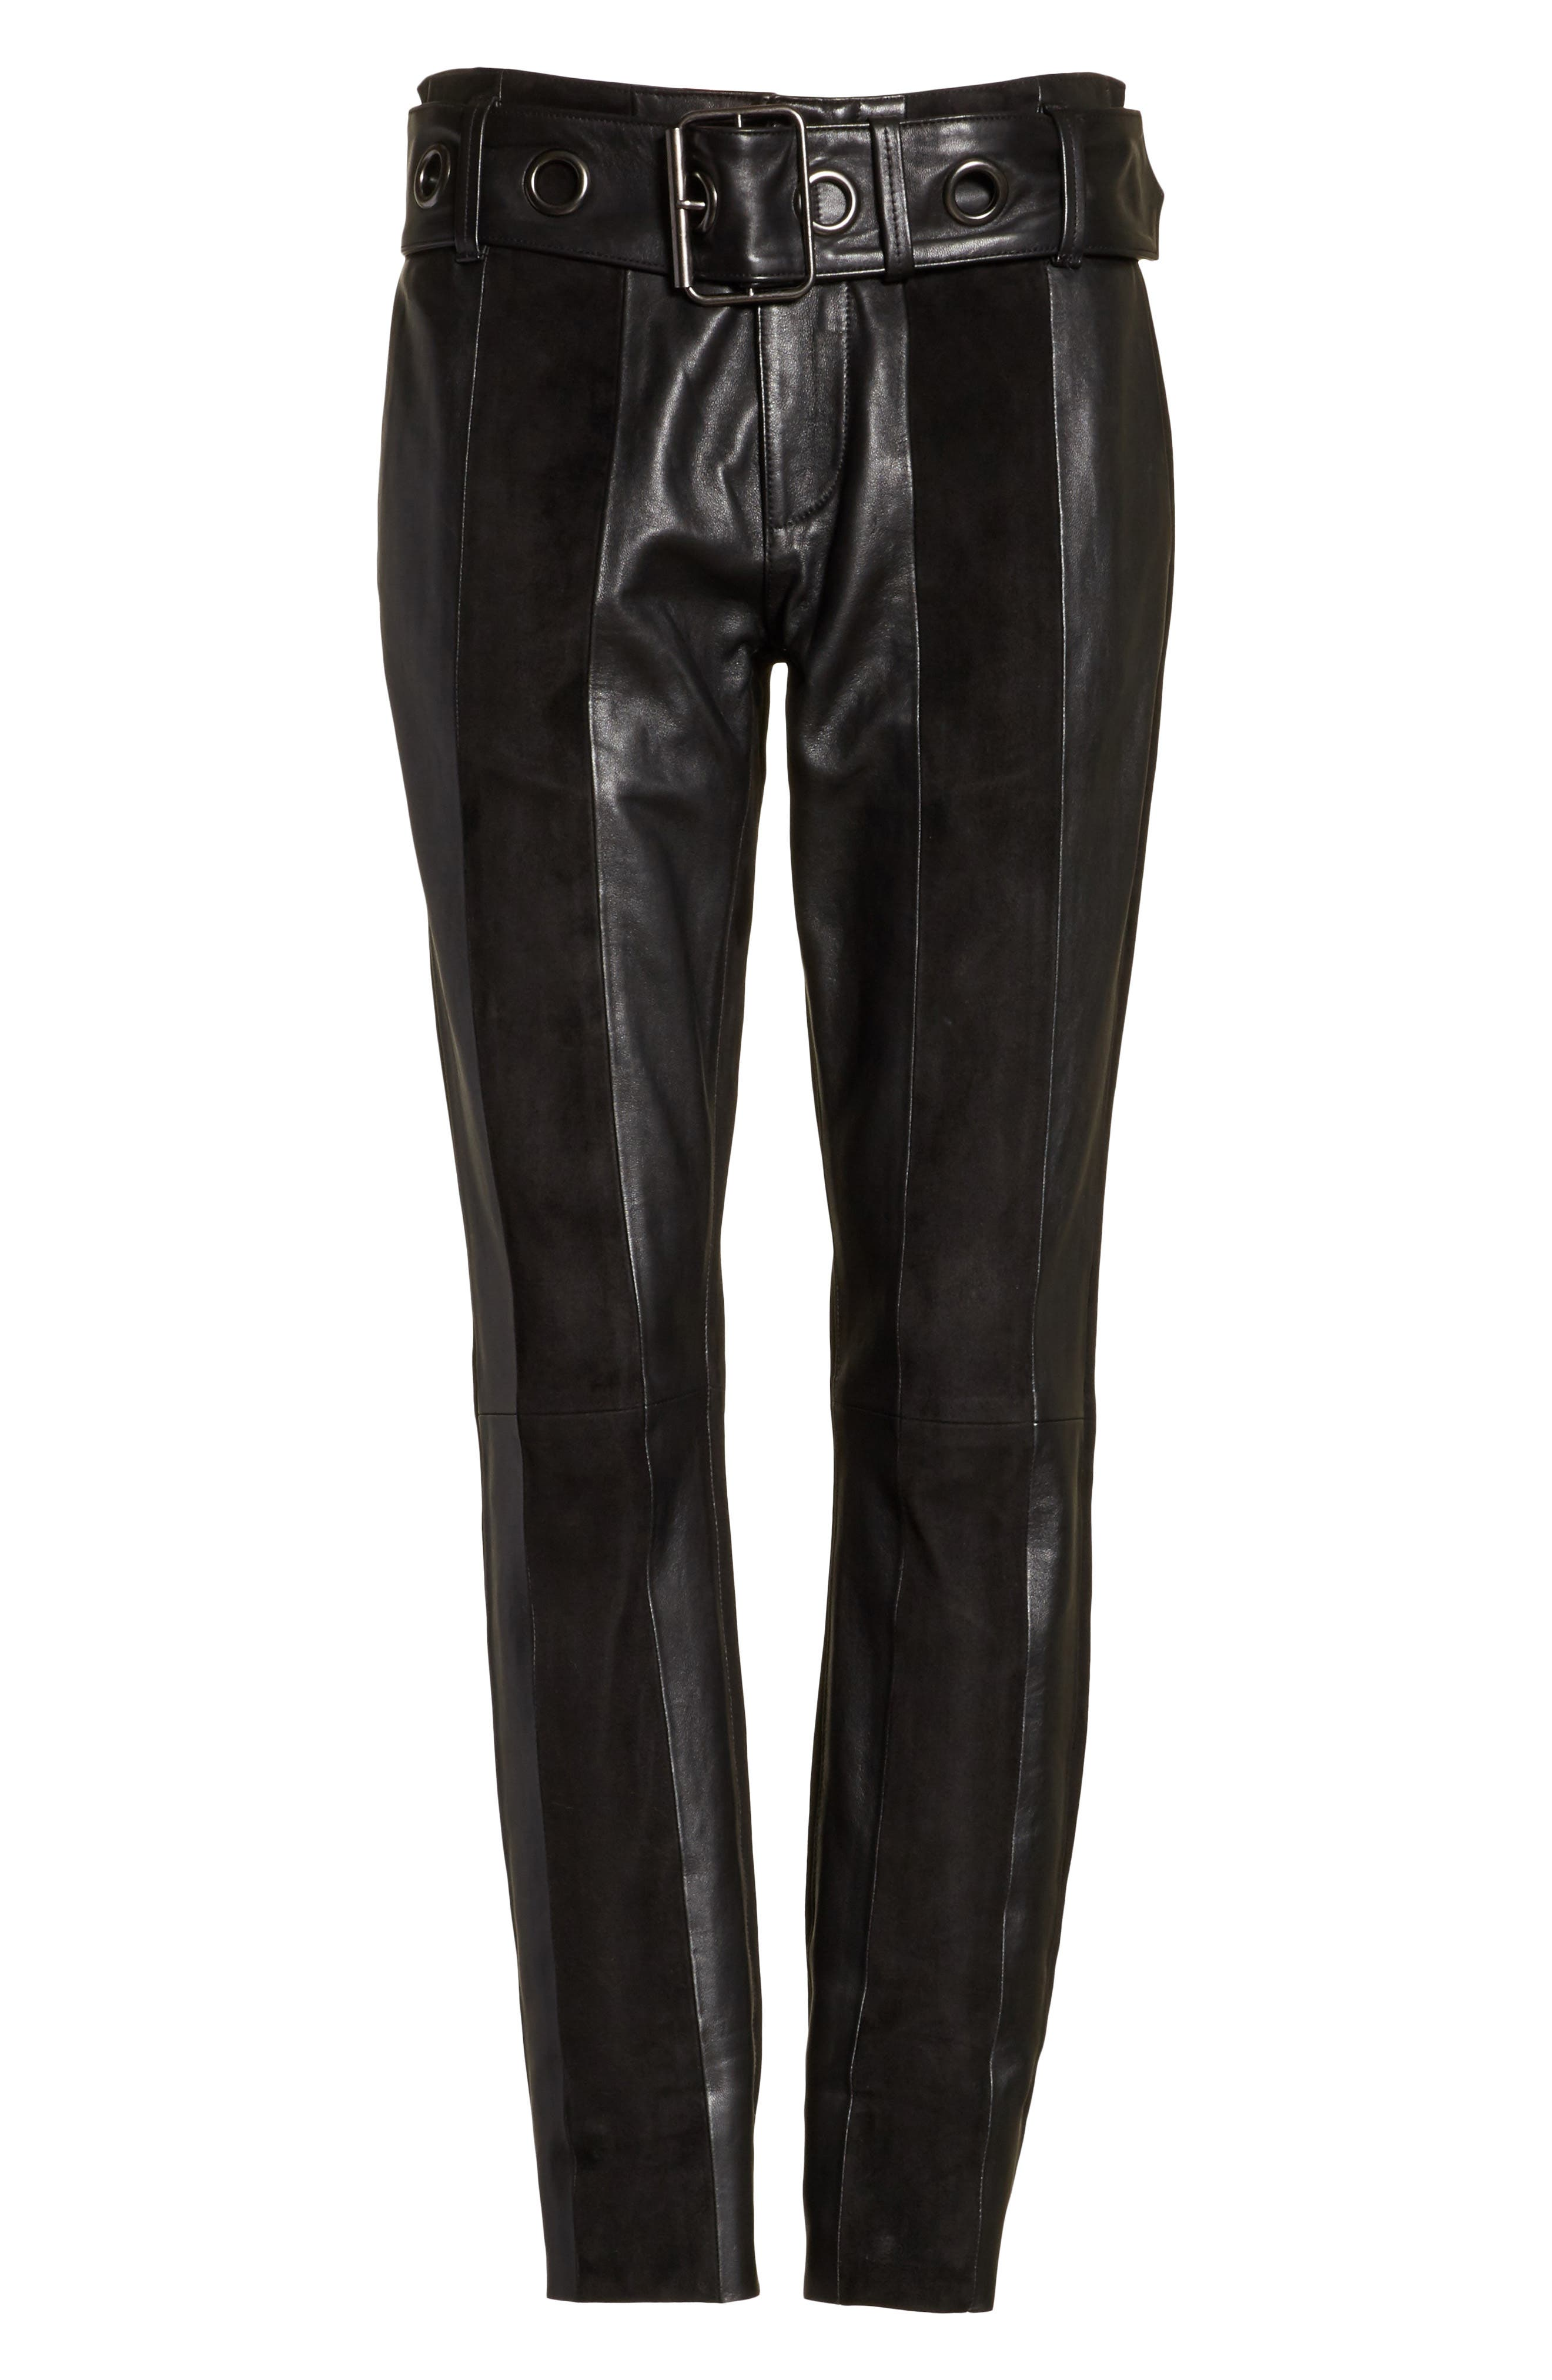 Paneled Suede & Leather Pants,                             Alternate thumbnail 6, color,                             001